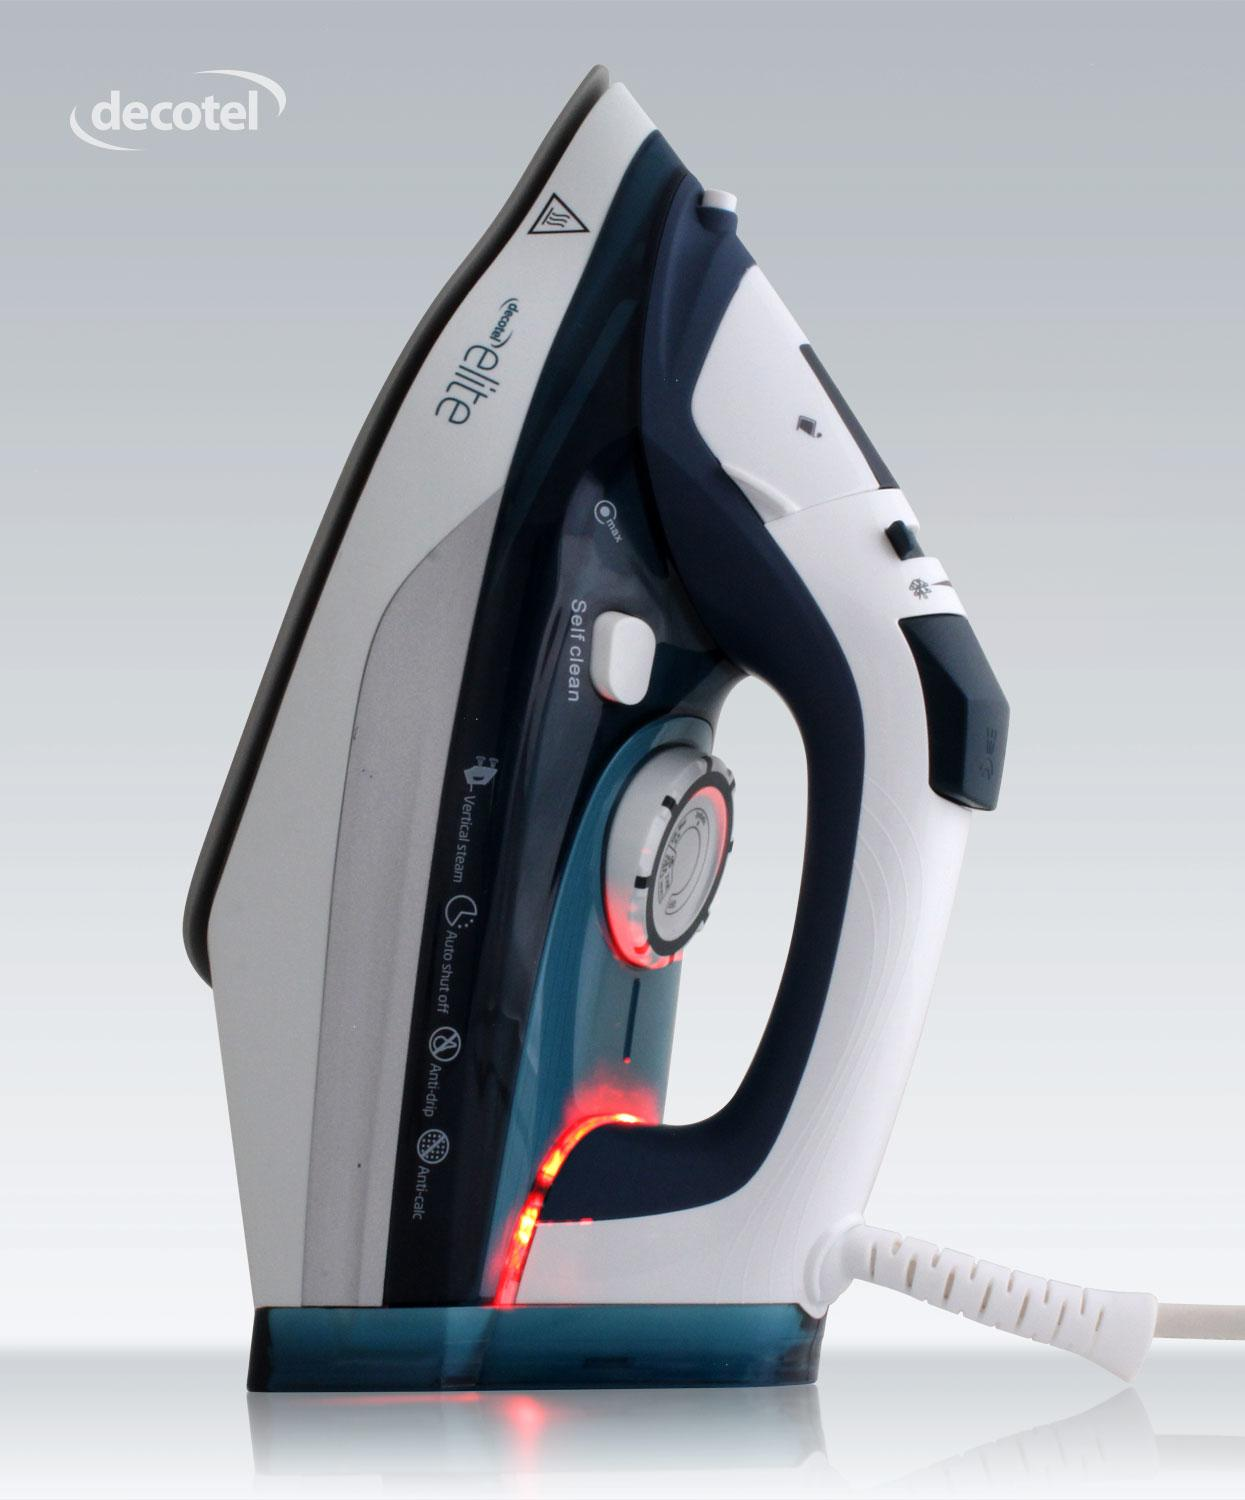 Decotel Elite Steam Iron for hotels